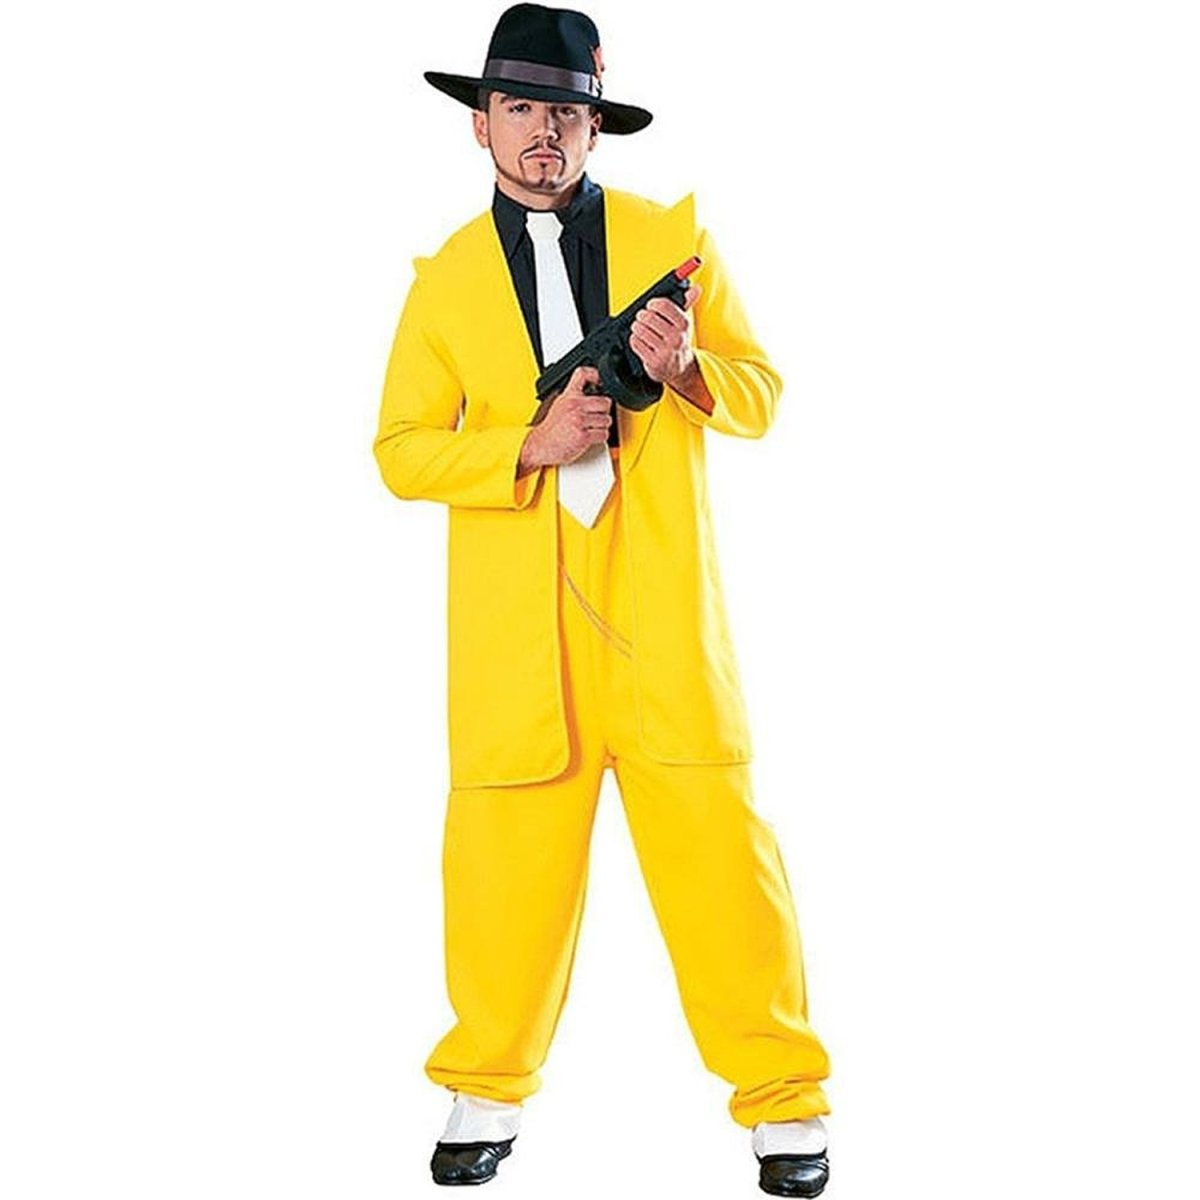 Add a green mask to the yellow zoot suit, and you've got Jim Carrey's getup from The Mask!